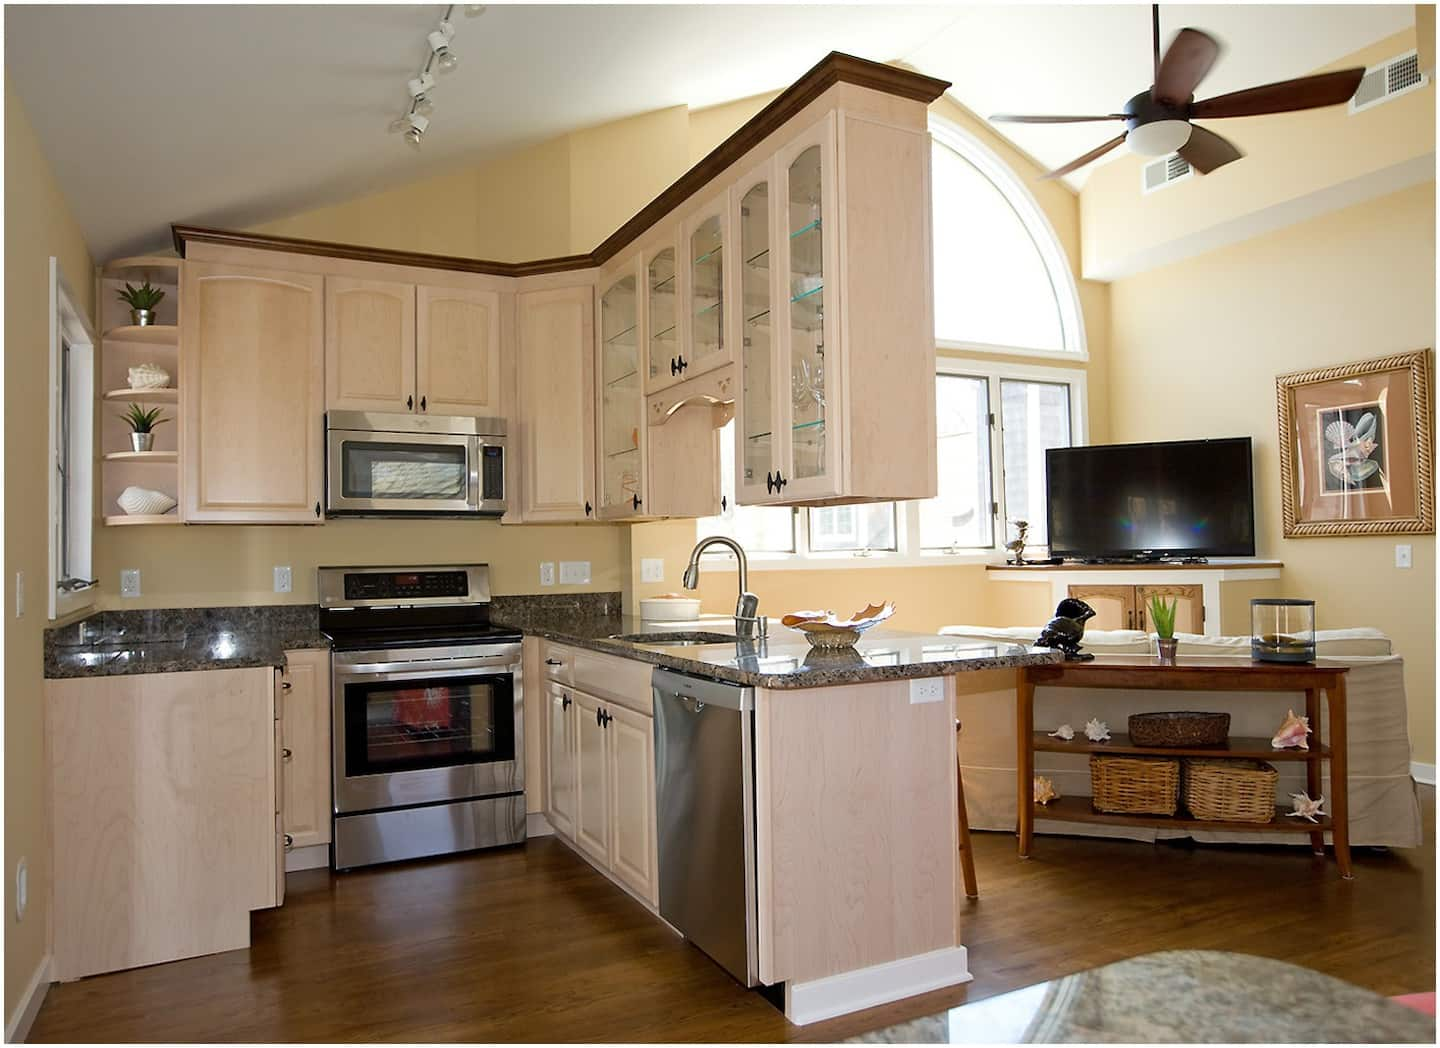 Charming 2 Bedroom Cottage Downtown Rehoboth Beach Airbnb